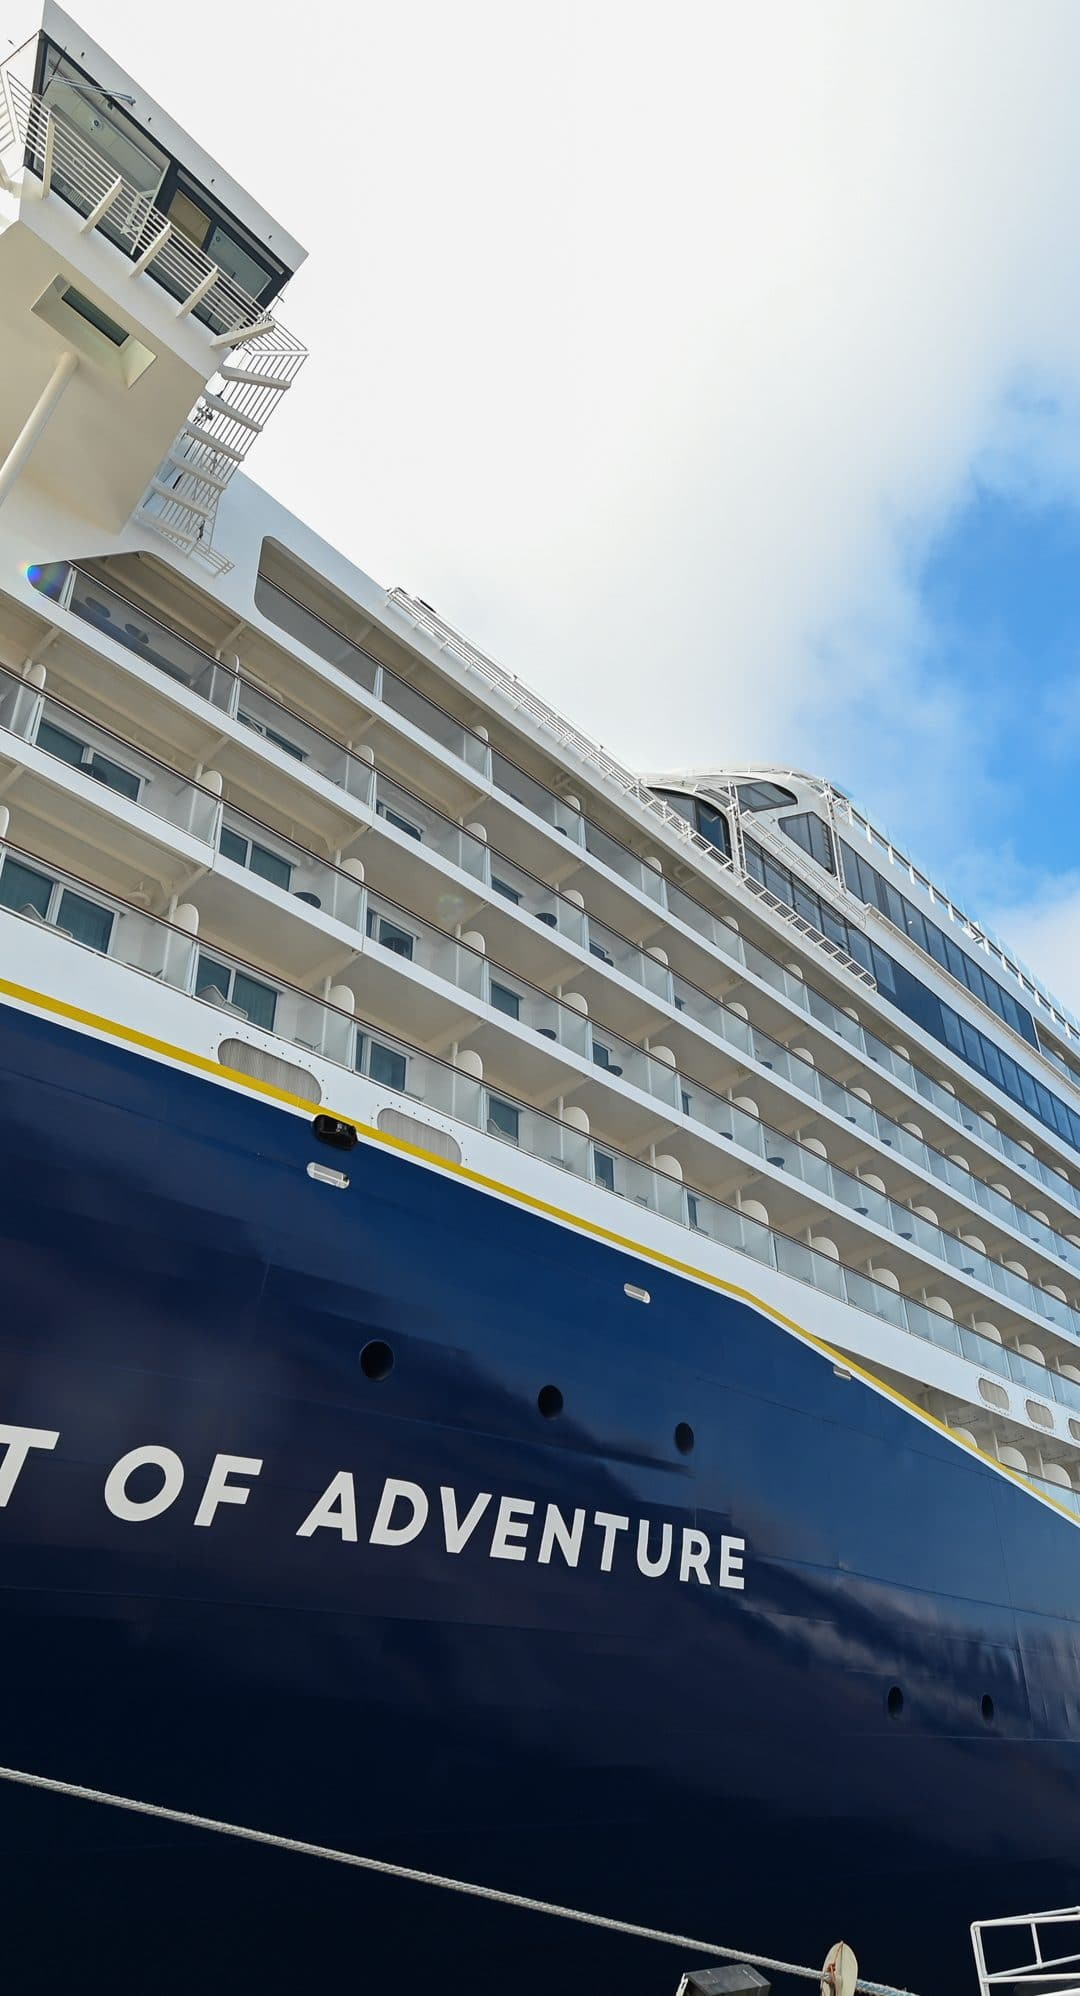 A closer look at Saga's newest ship 'Spirit of Adventure' following her naming ceremony in Portsmouth